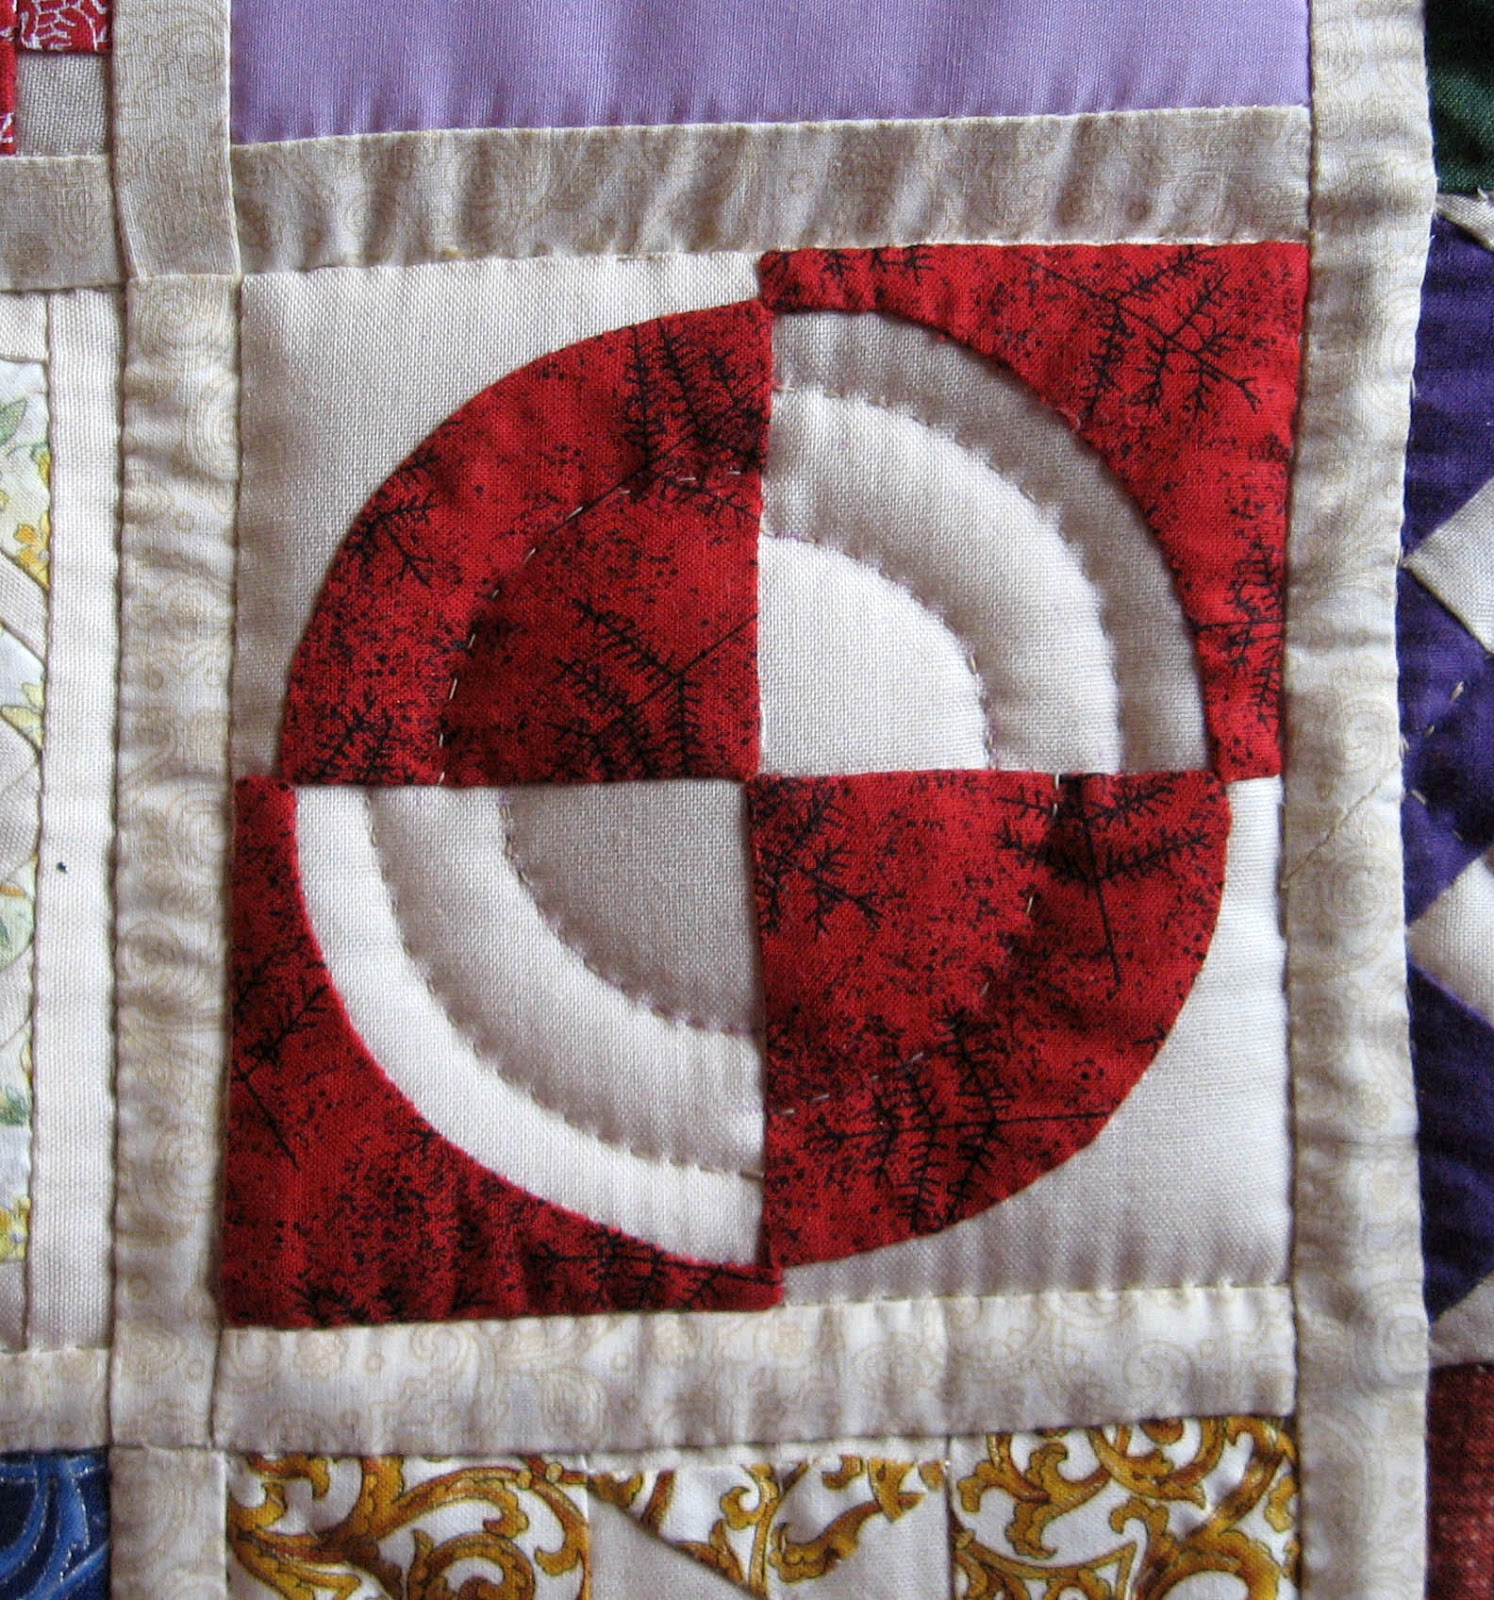 Quilted Art from Mary Katherine Hopkins: Jane Stickle Quilt ... : jane stickle quilt - Adamdwight.com